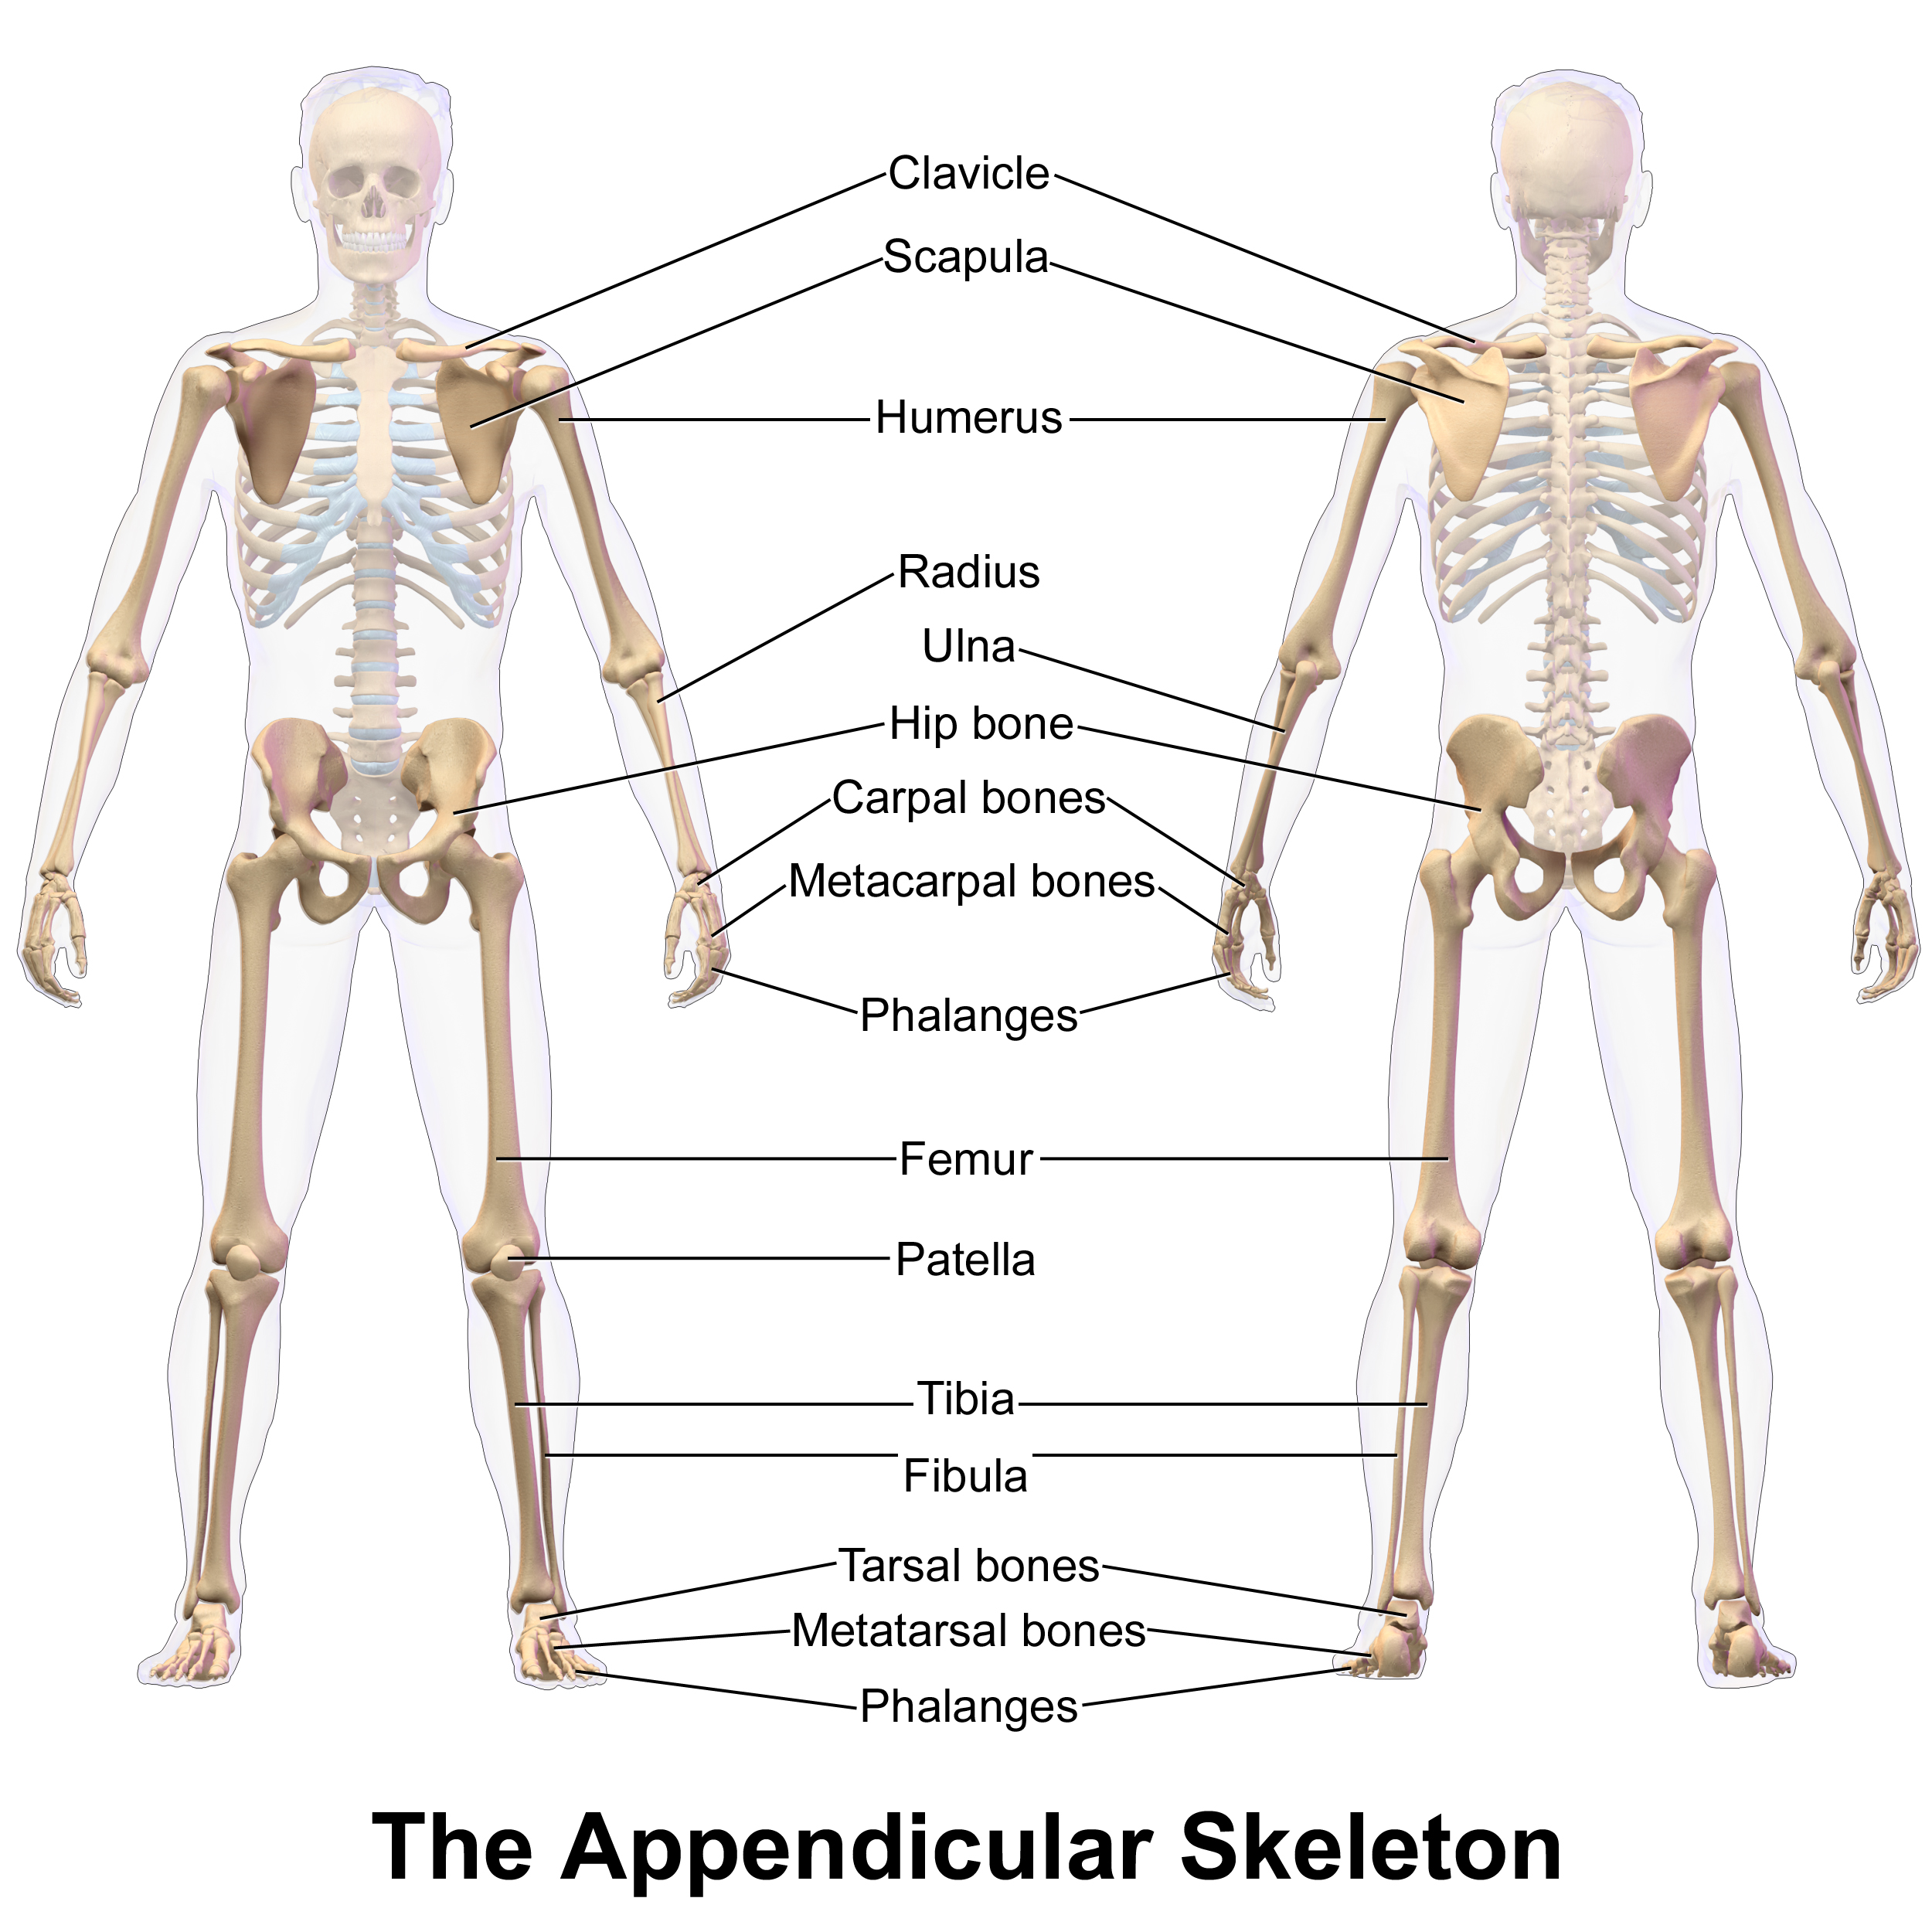 Axial Skeleton And Appendicular Skeleton